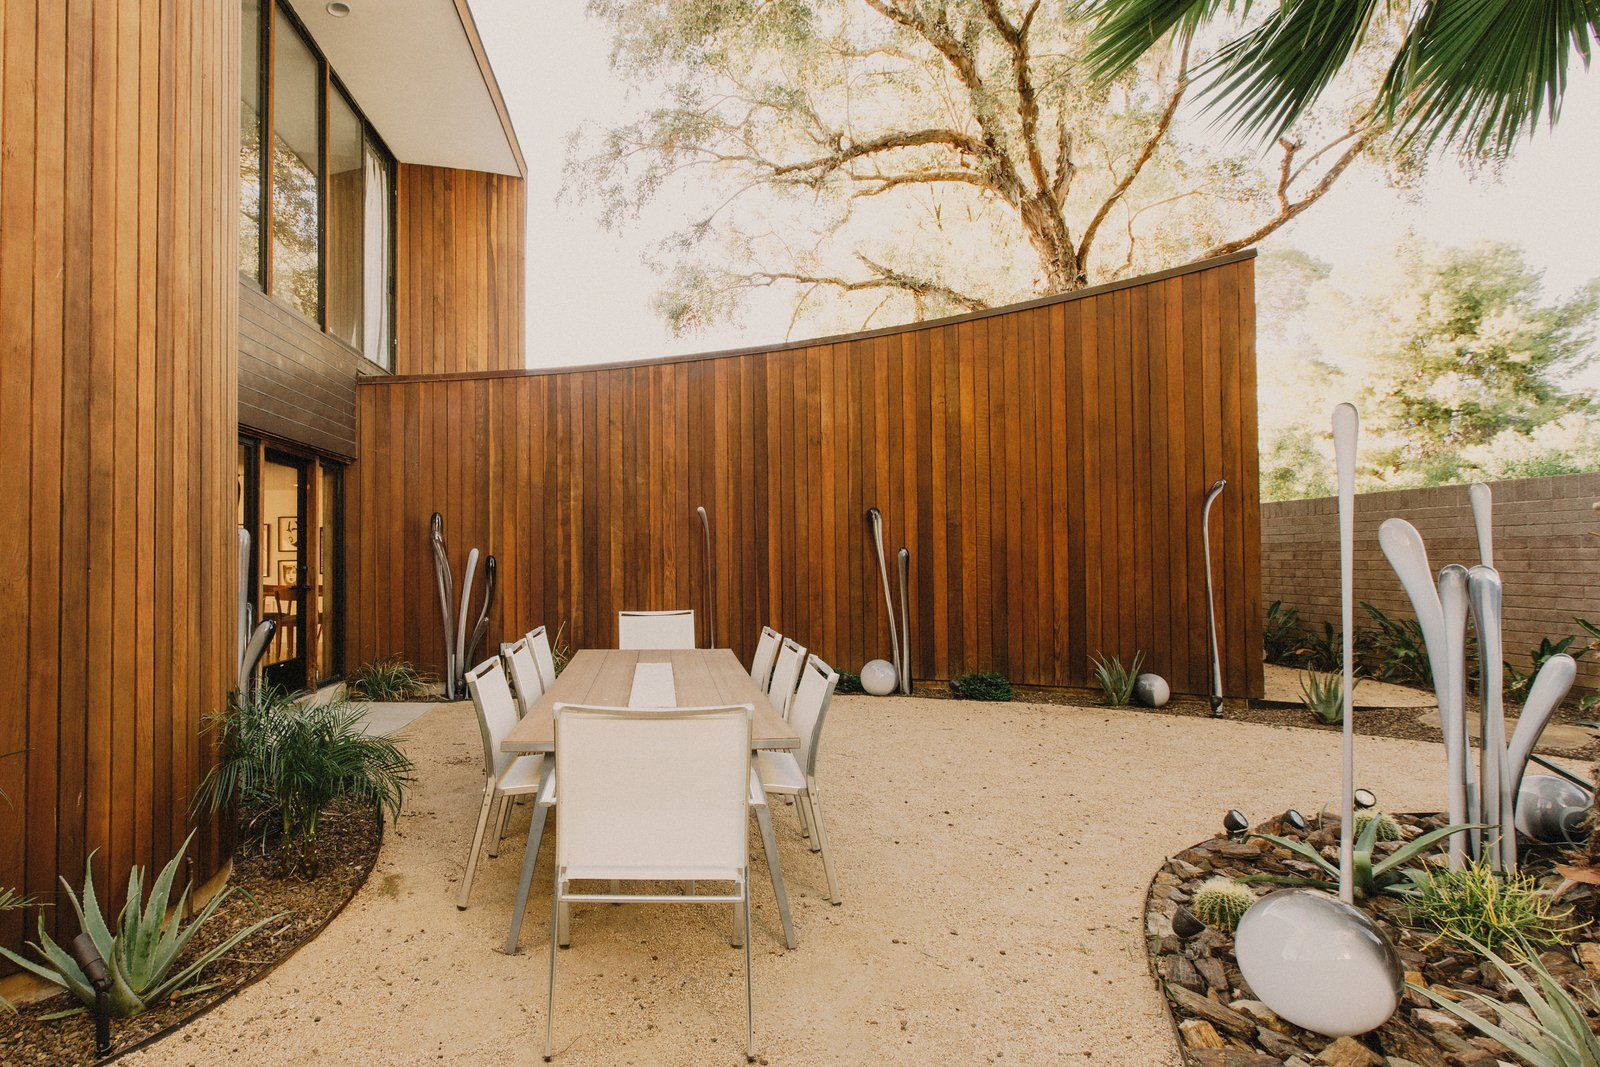 #modern #courtyard #wood #landscape #glass #sculpture #organic #table  #phoenix #arizona  Curves House by The Ranch Mine